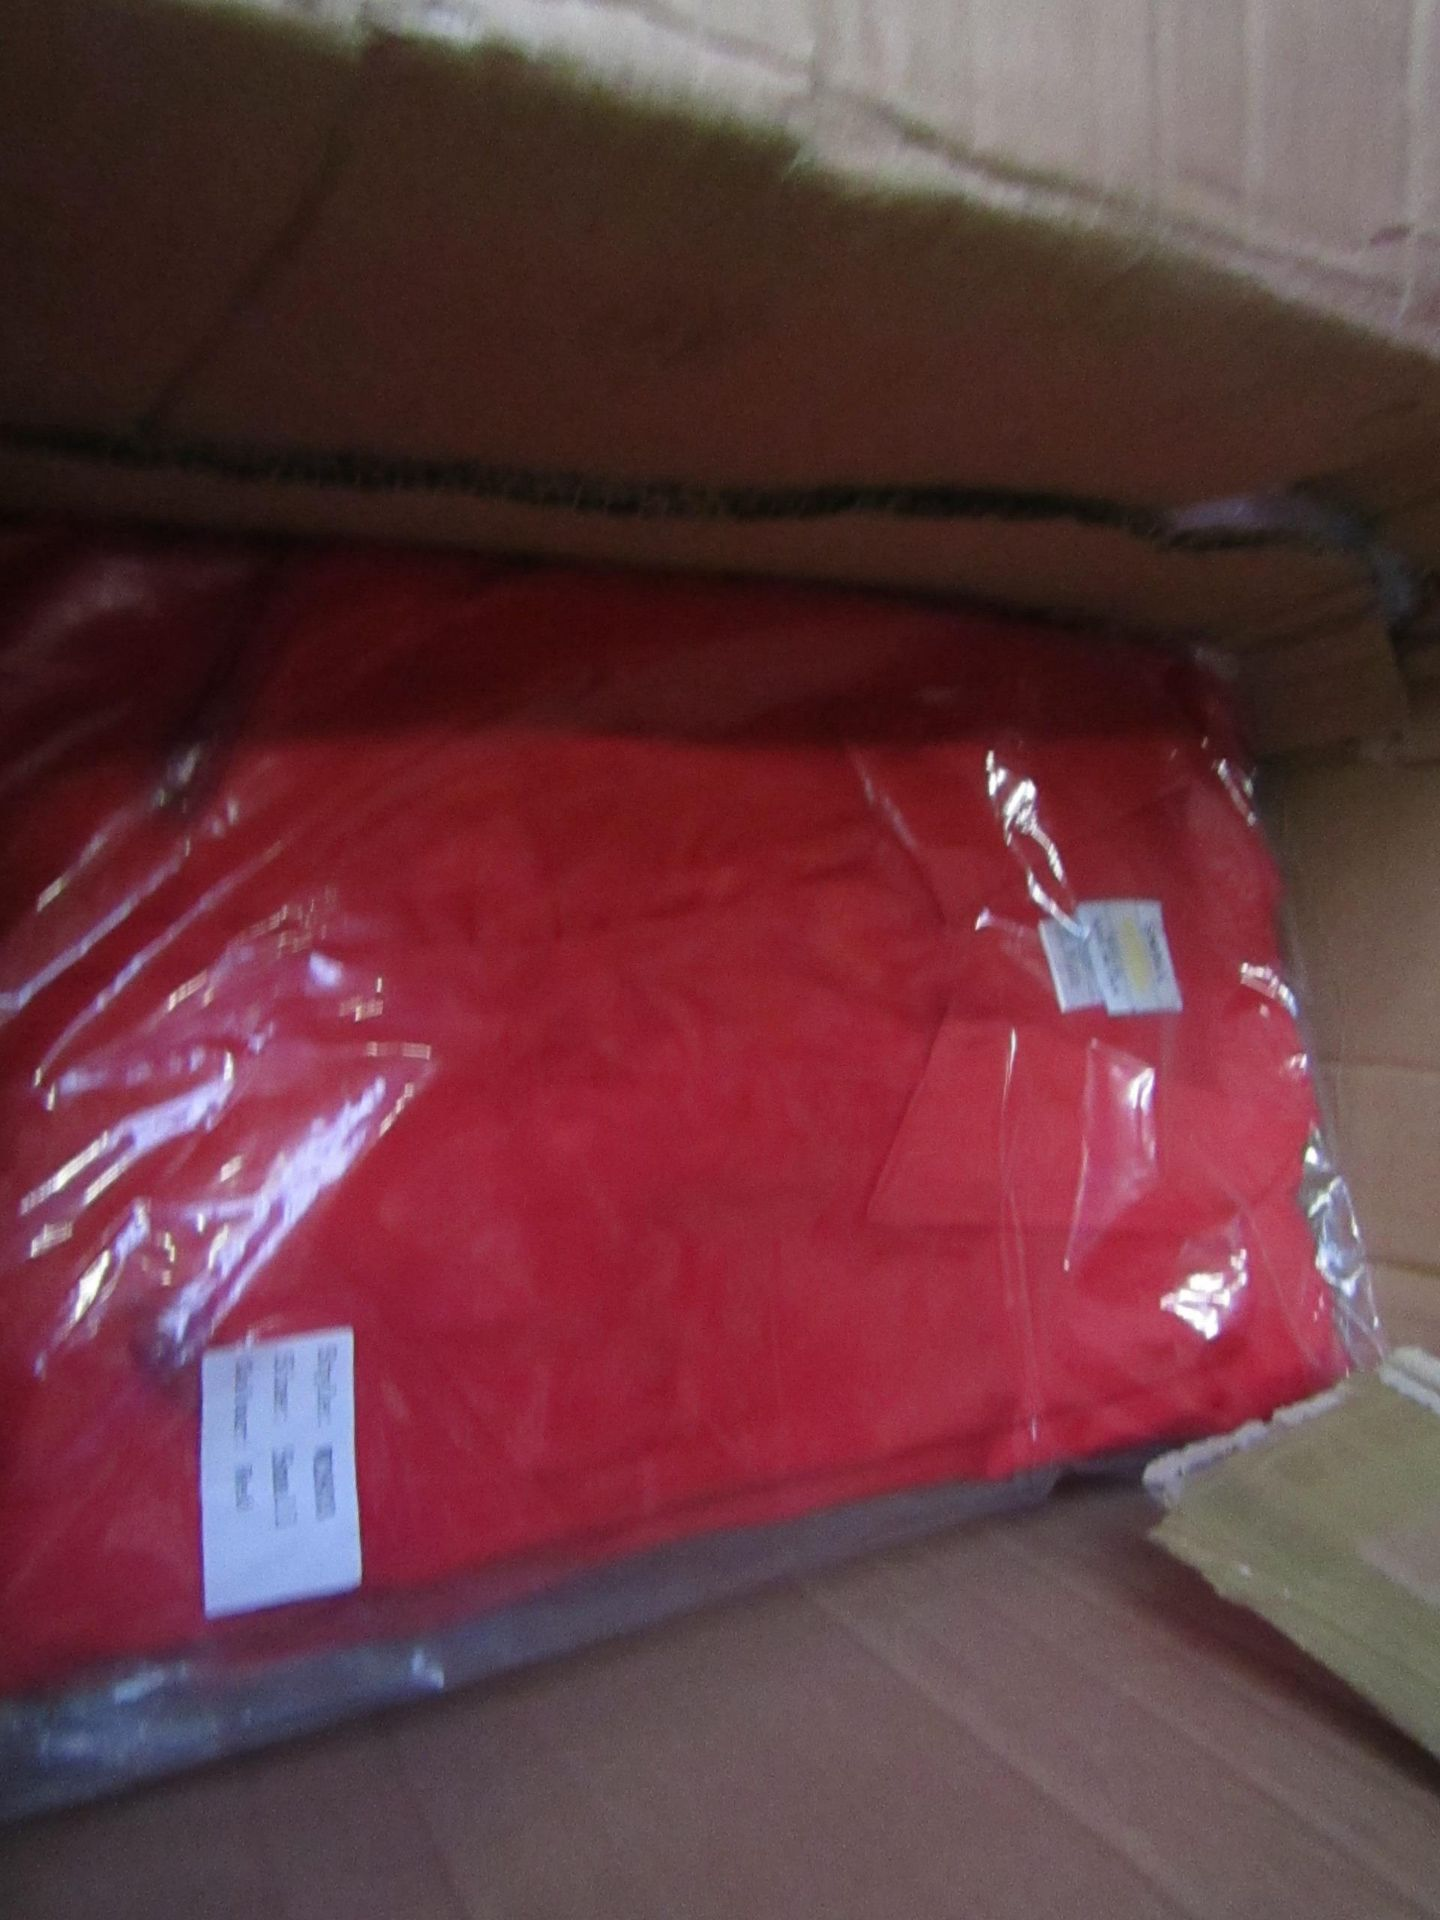 Black Knight - Red Boilersuit - Size Small - Unused & Packaged.